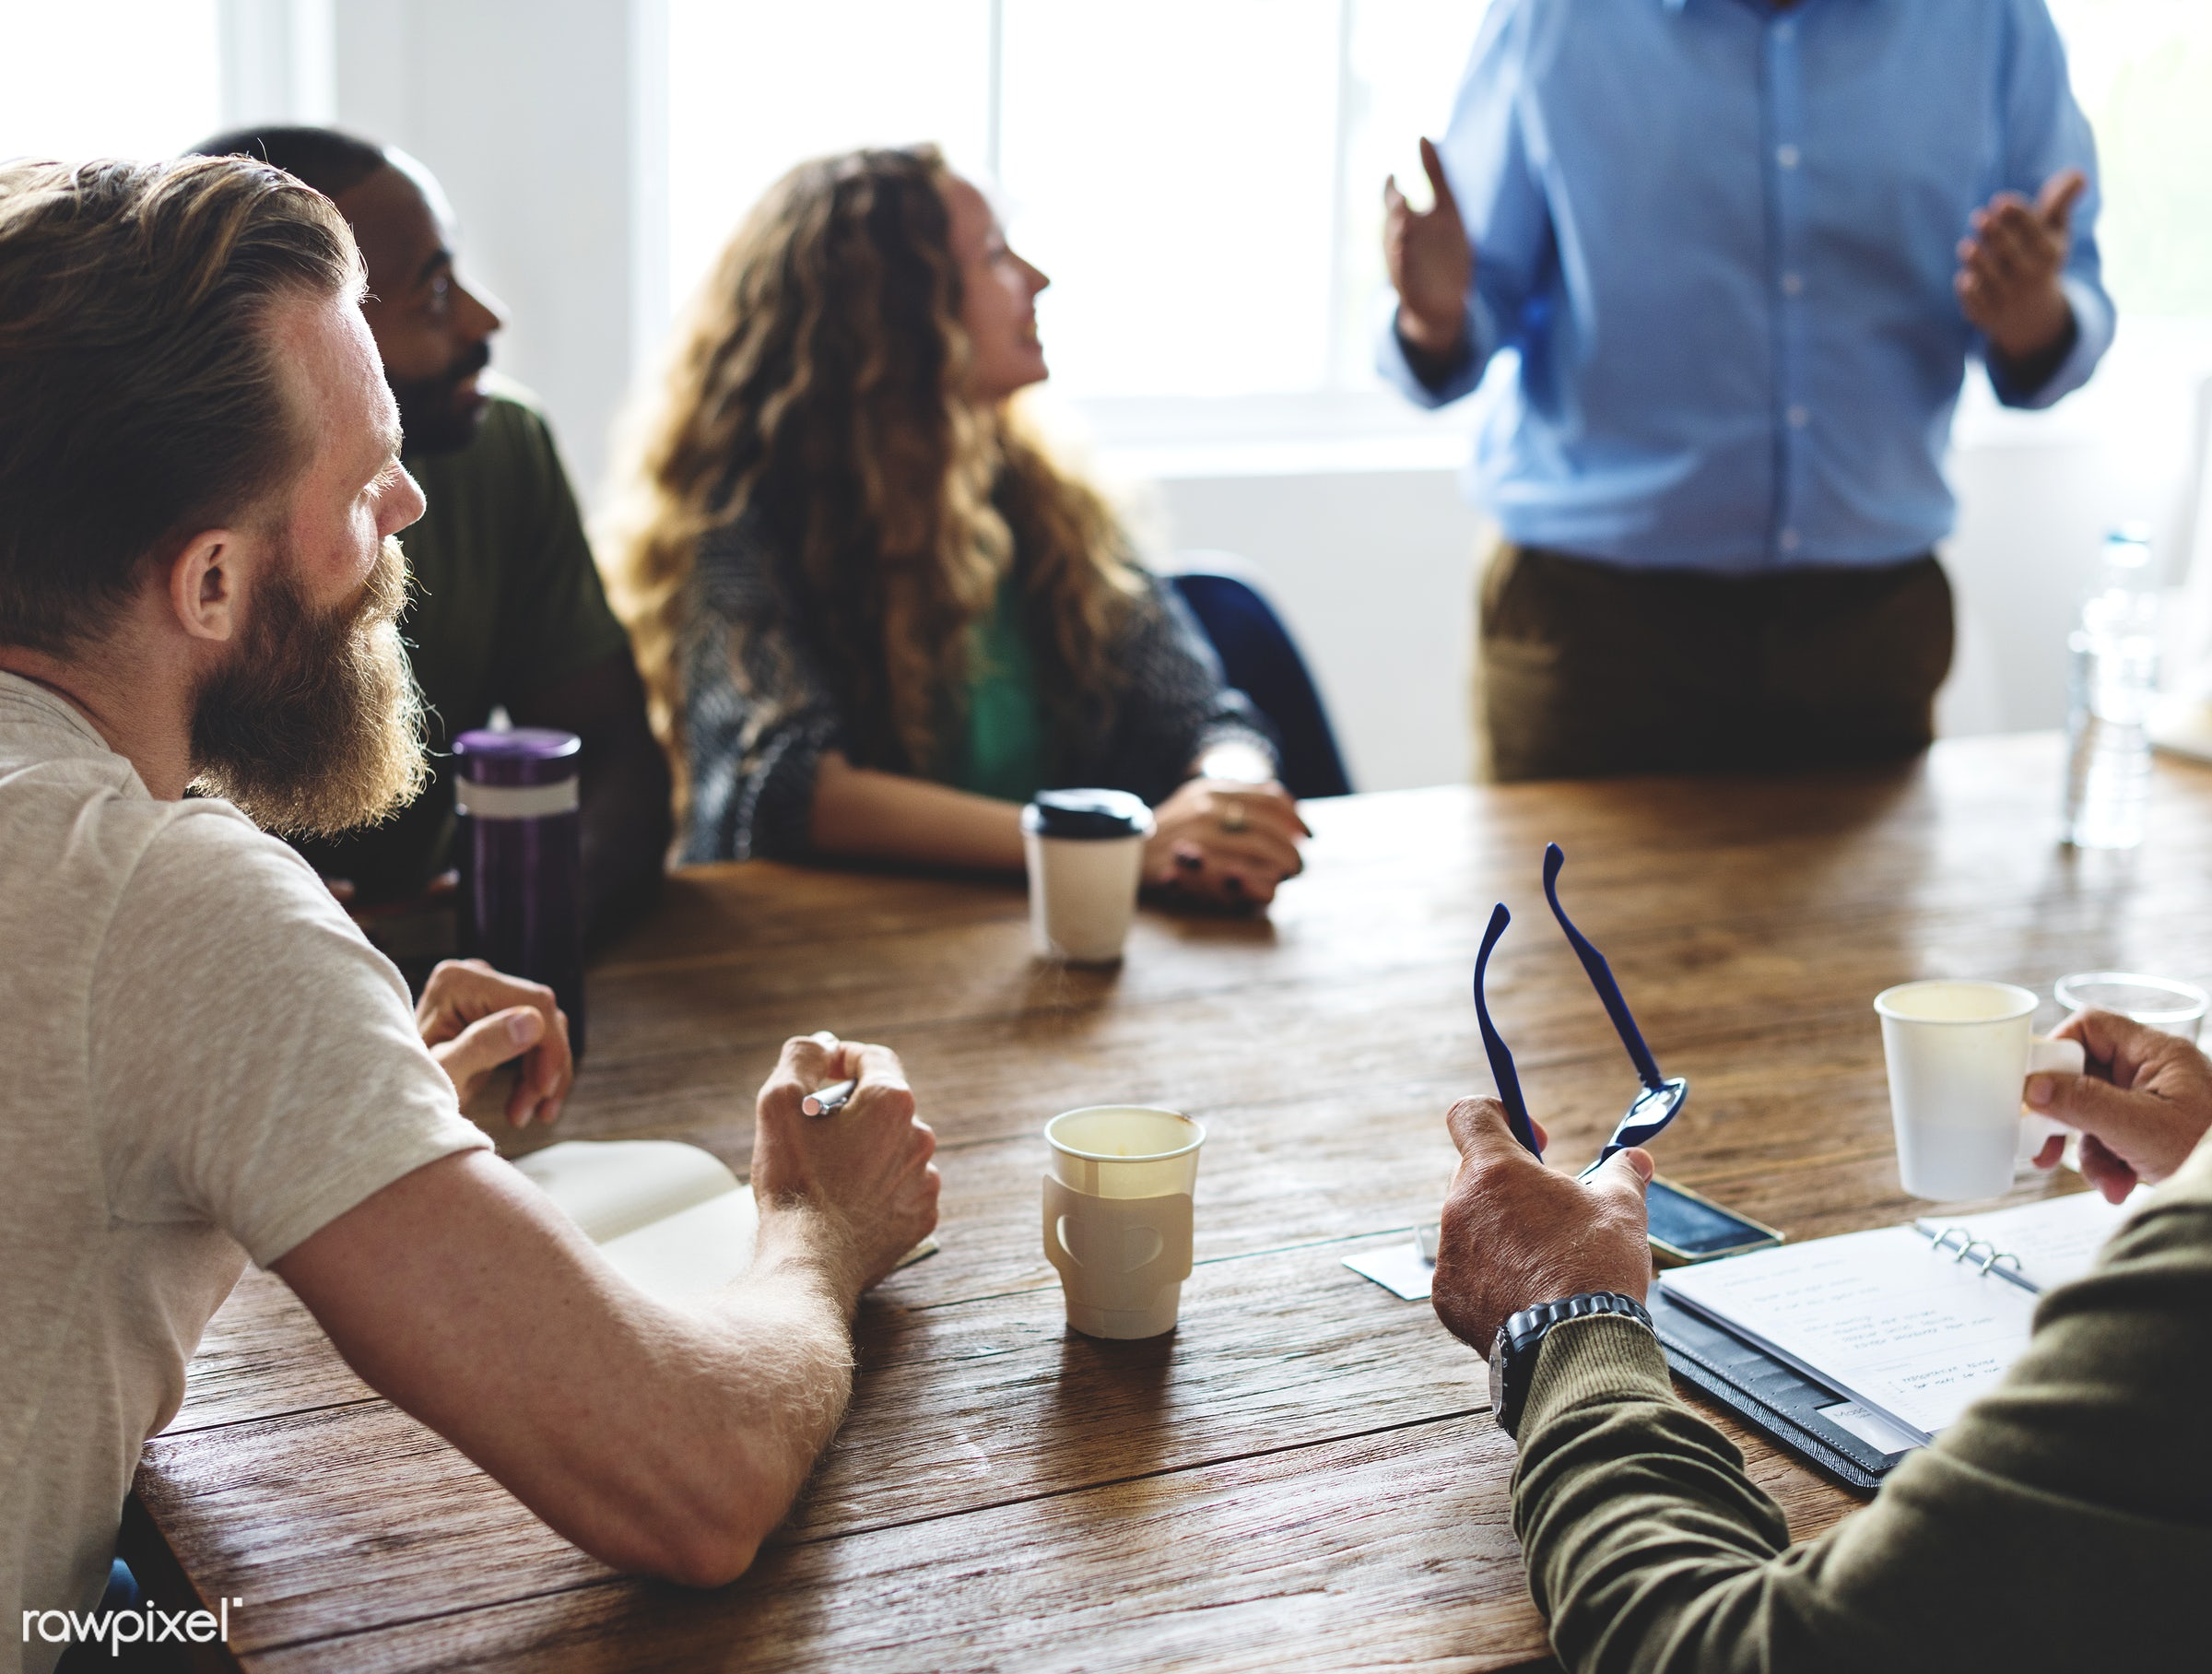 person, discussion, people, together, teamwork, help, communicate, woman, event, social, social events, connection, support...